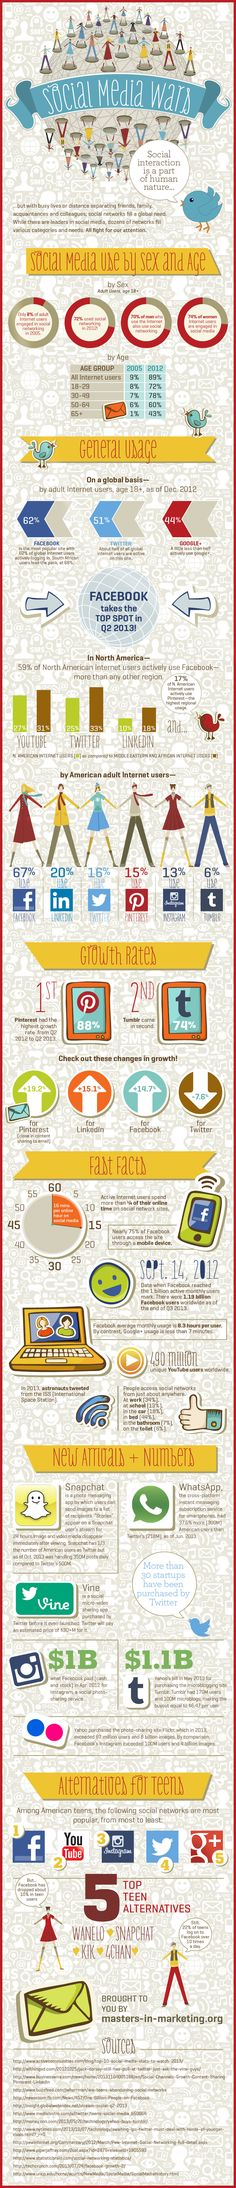 Unique Infographic Design, Social Media Wars @chisu26 #Infographic #Design  (http://www.pinterest.com/aldenchong/)